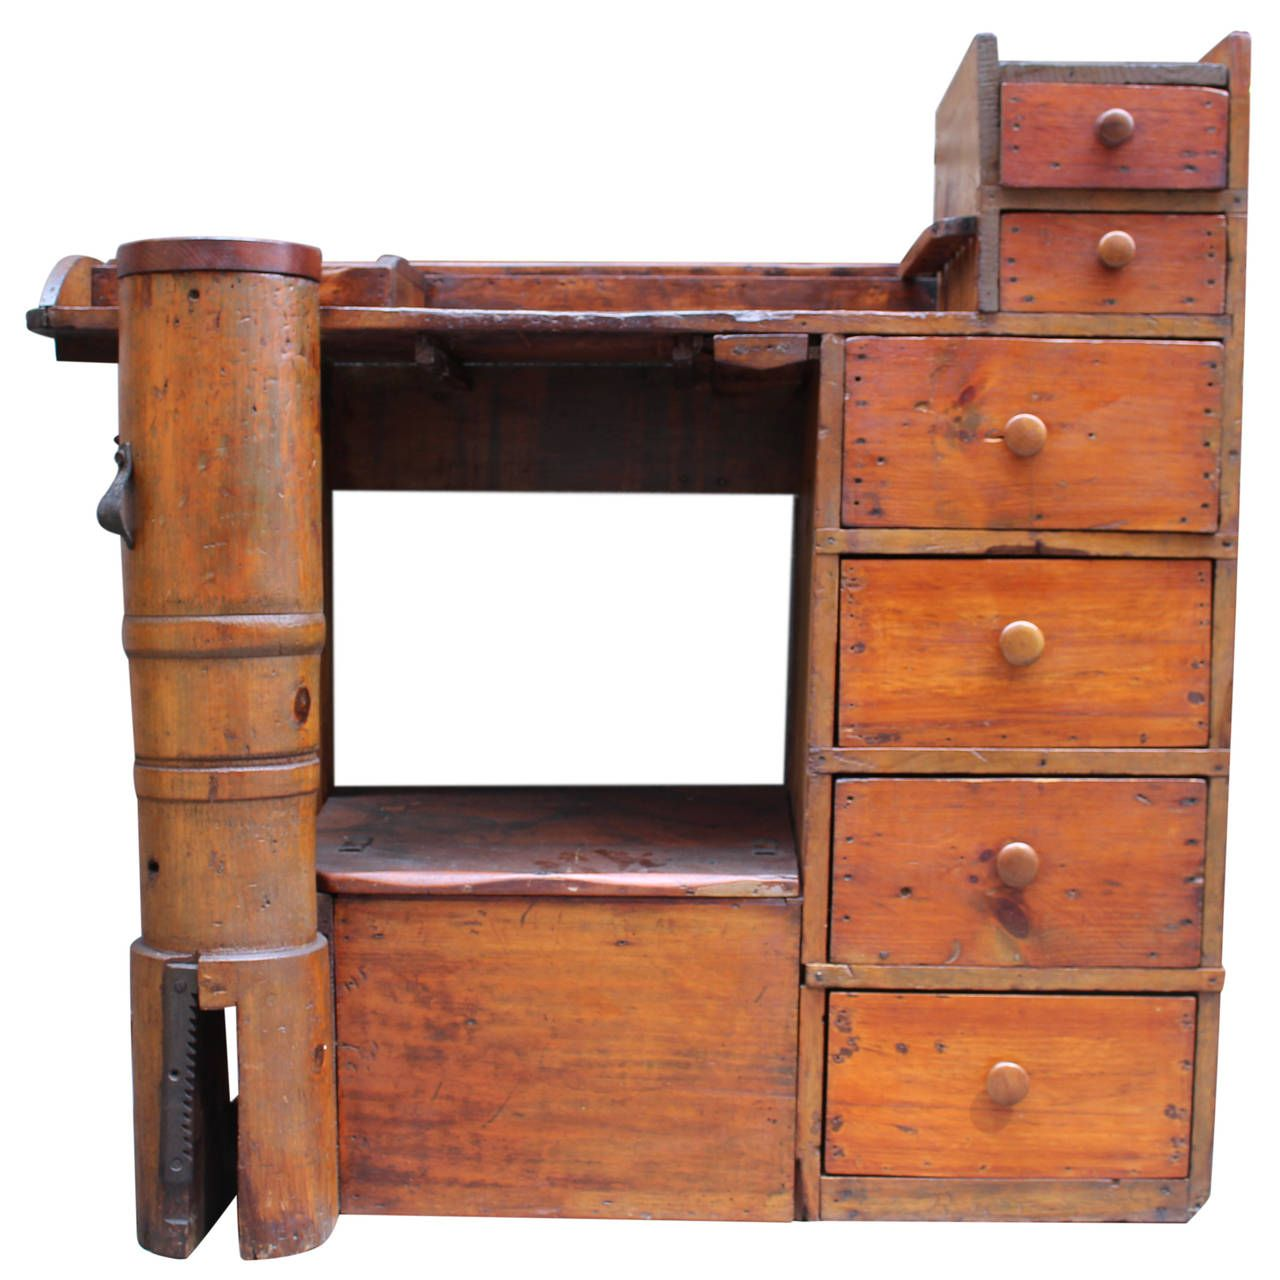 1880s Antique Pine Shoe Cobbler Work Desk with Drawers and Cubbyholes |  From a unique collection of antique and modern industrial furniture at ... - 1880s Antique Pine Shoe Cobbler Work Desk With Drawers And